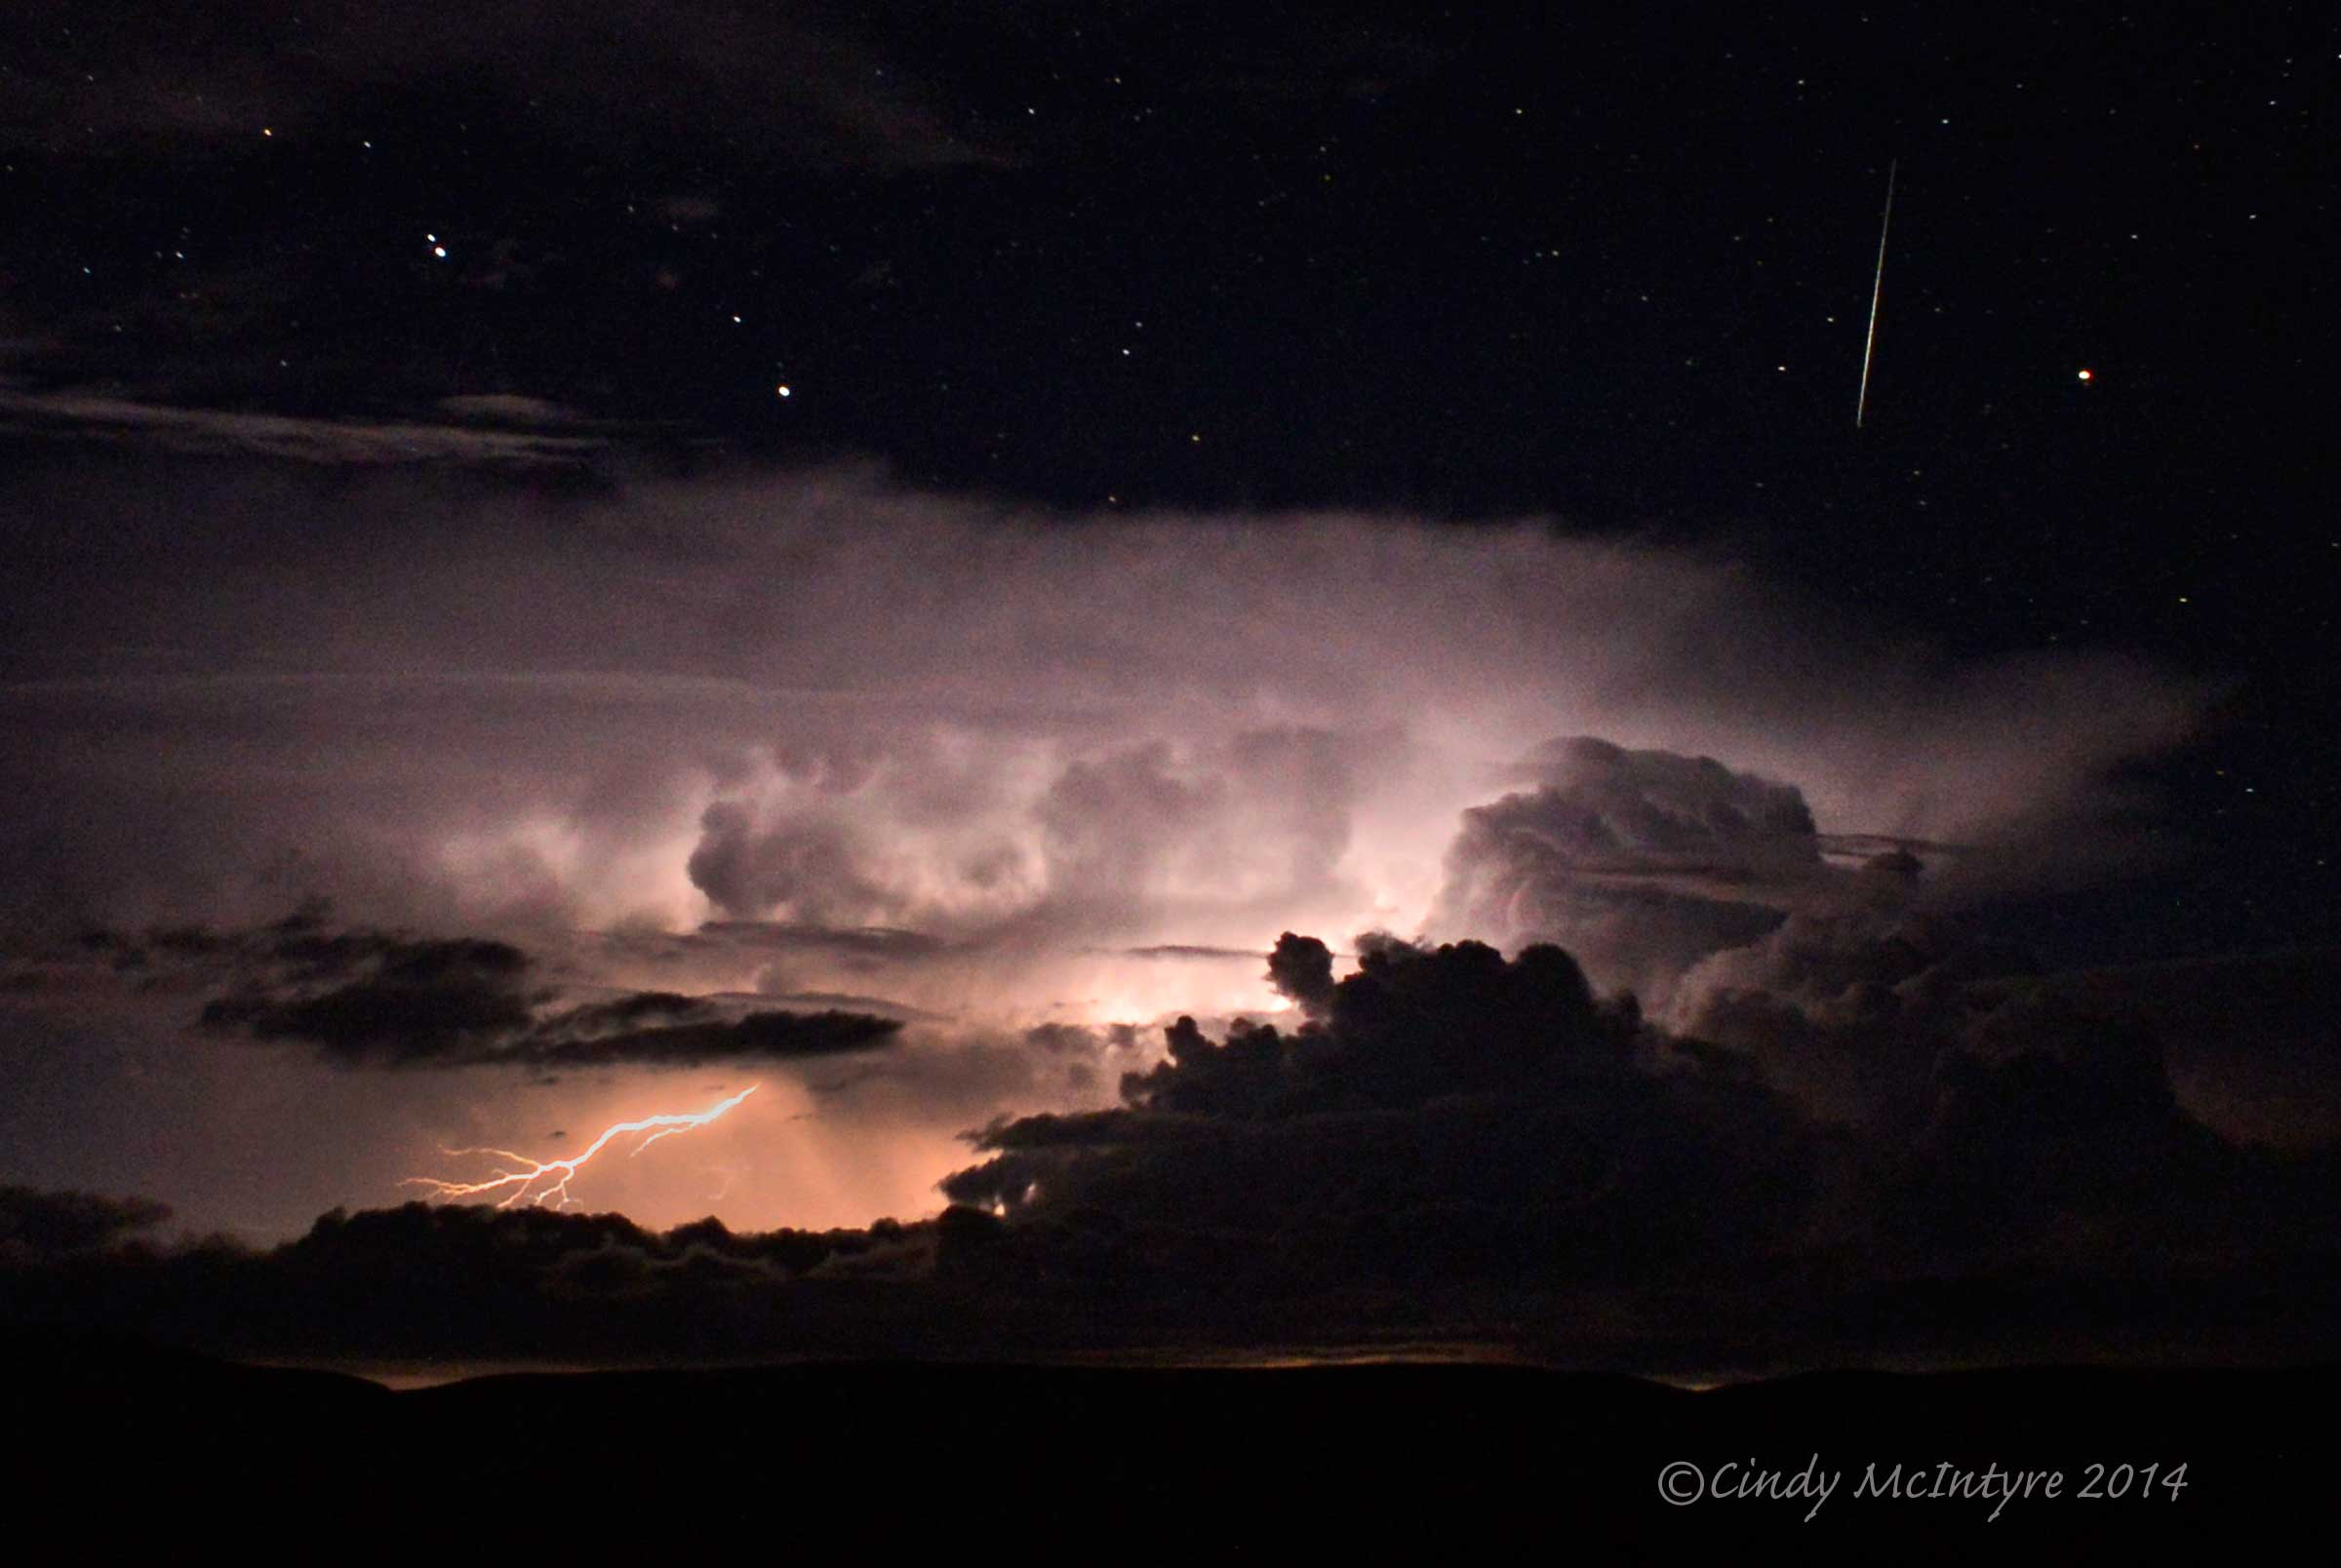 Lightning, stars, and a meteor